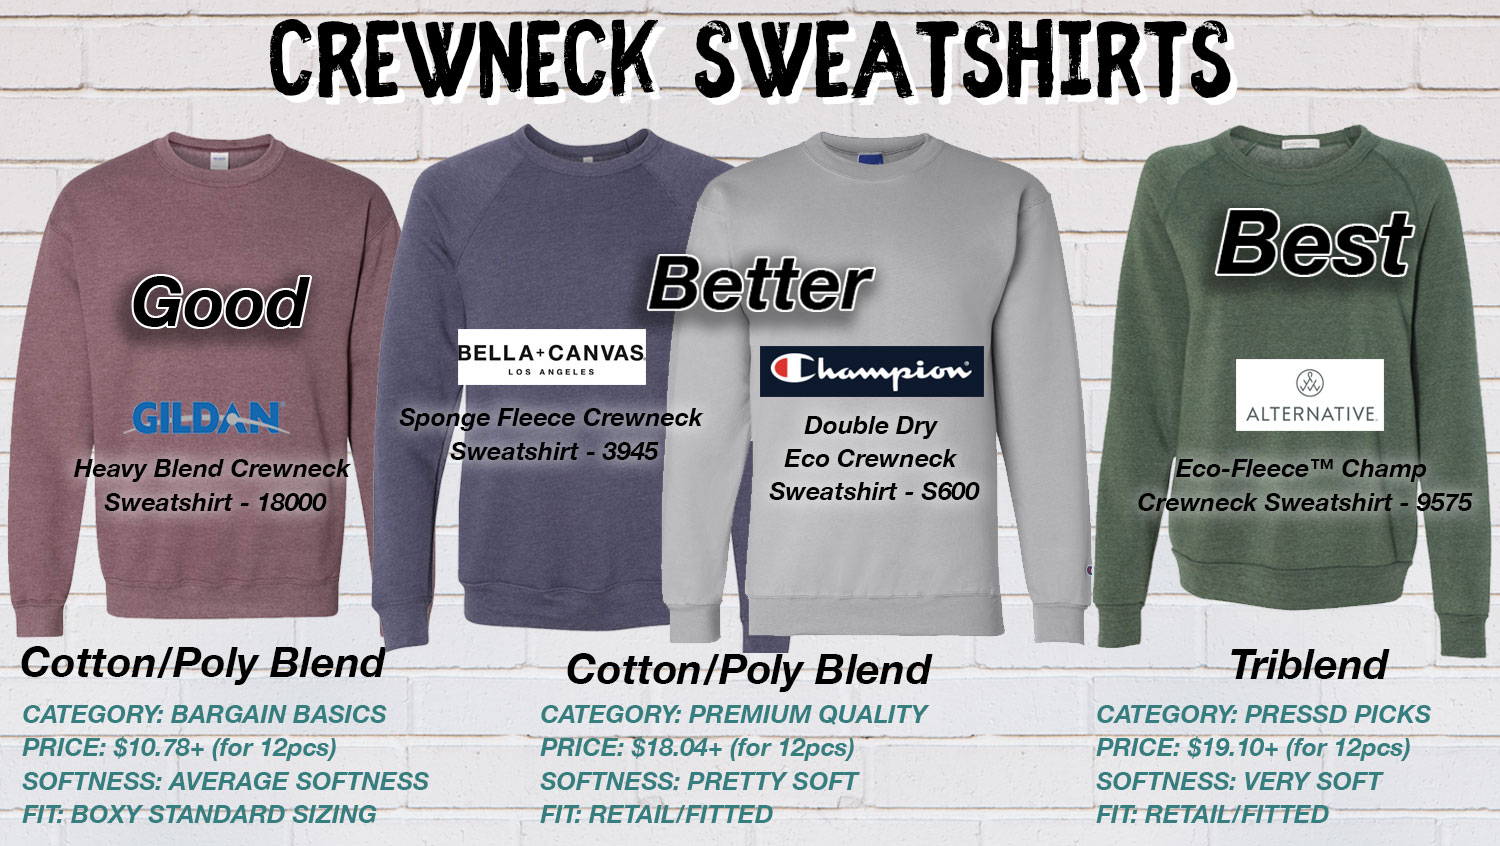 Compare-Sweatshirts-Summer19.jpg